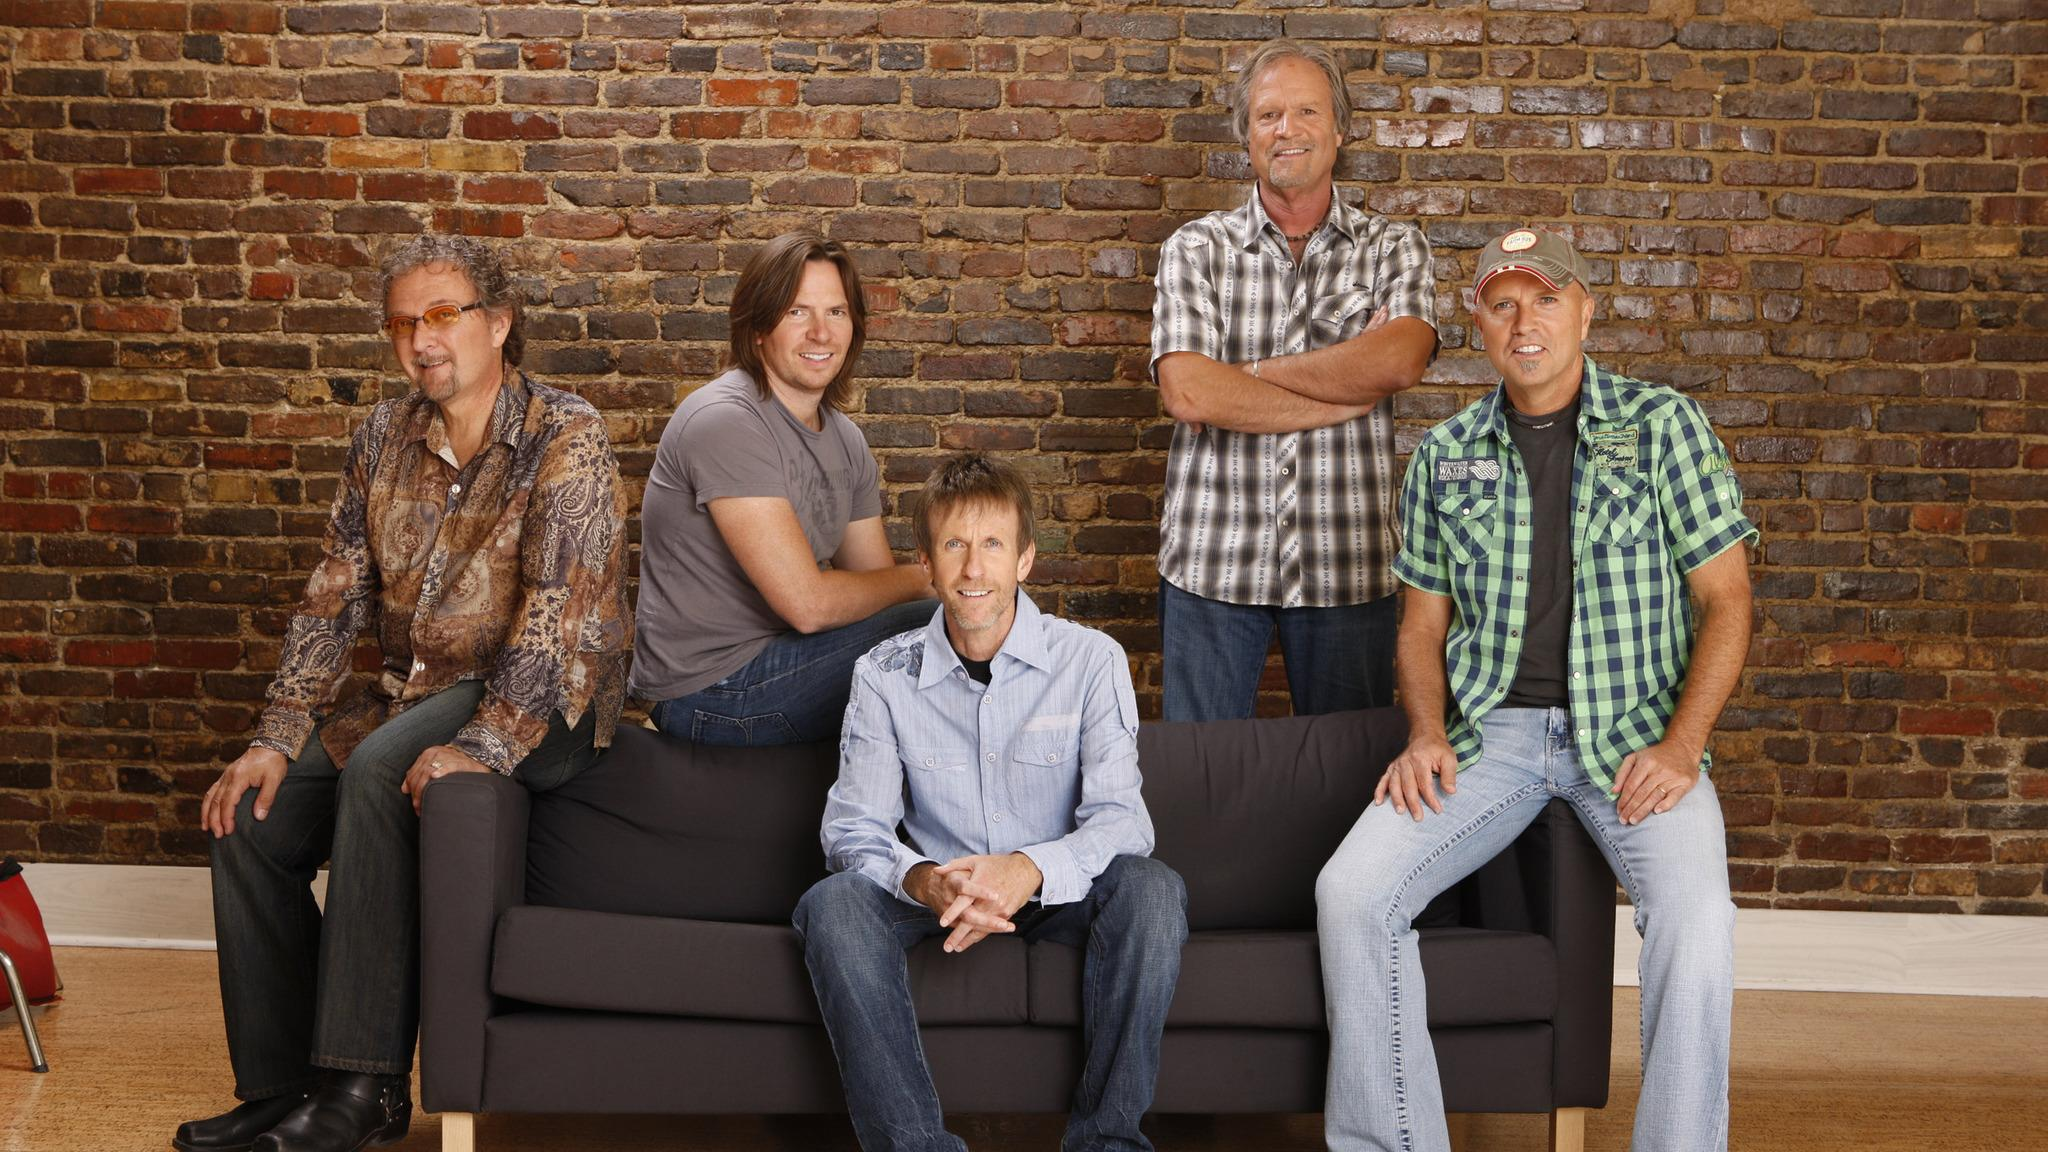 Sawyer Brown at Grizzly Rose - Denver, CO 80216